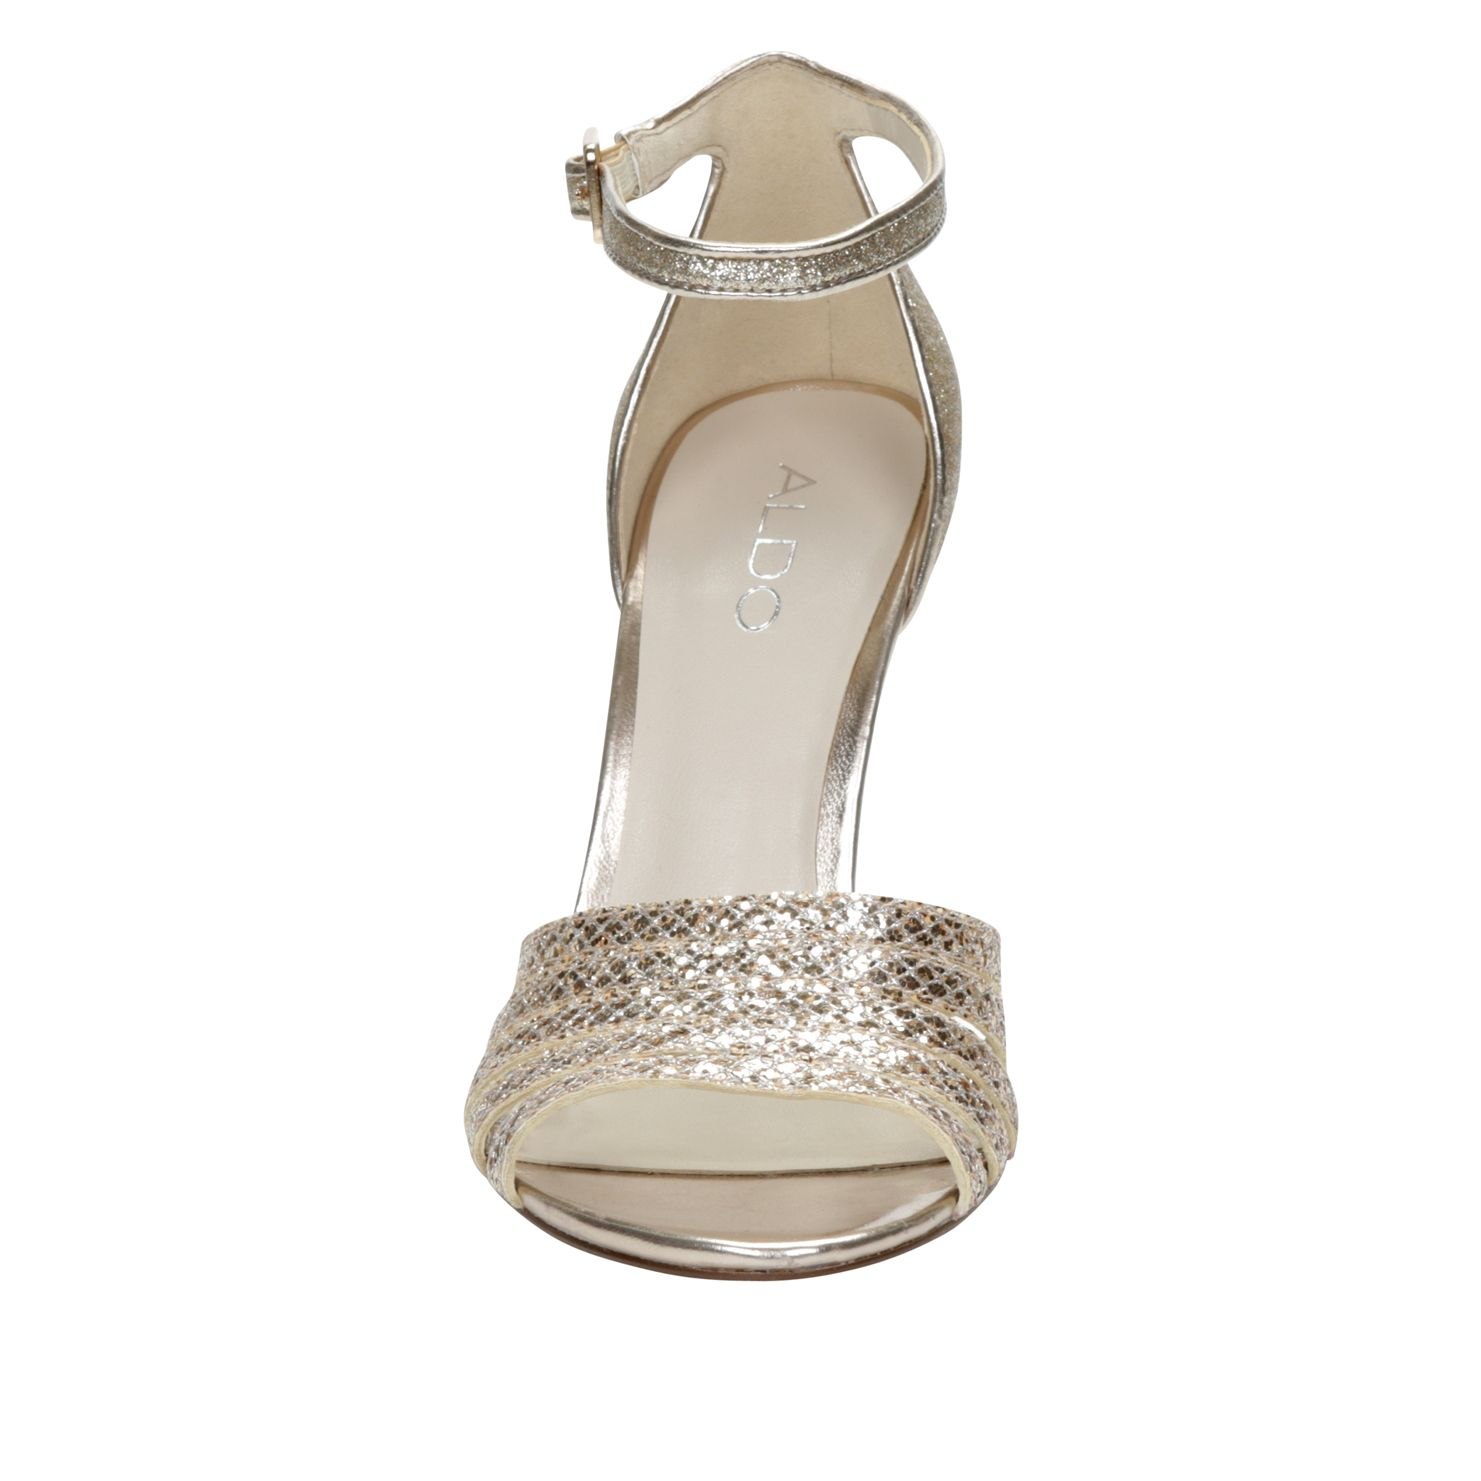 Internoppo ankle strap court shoes